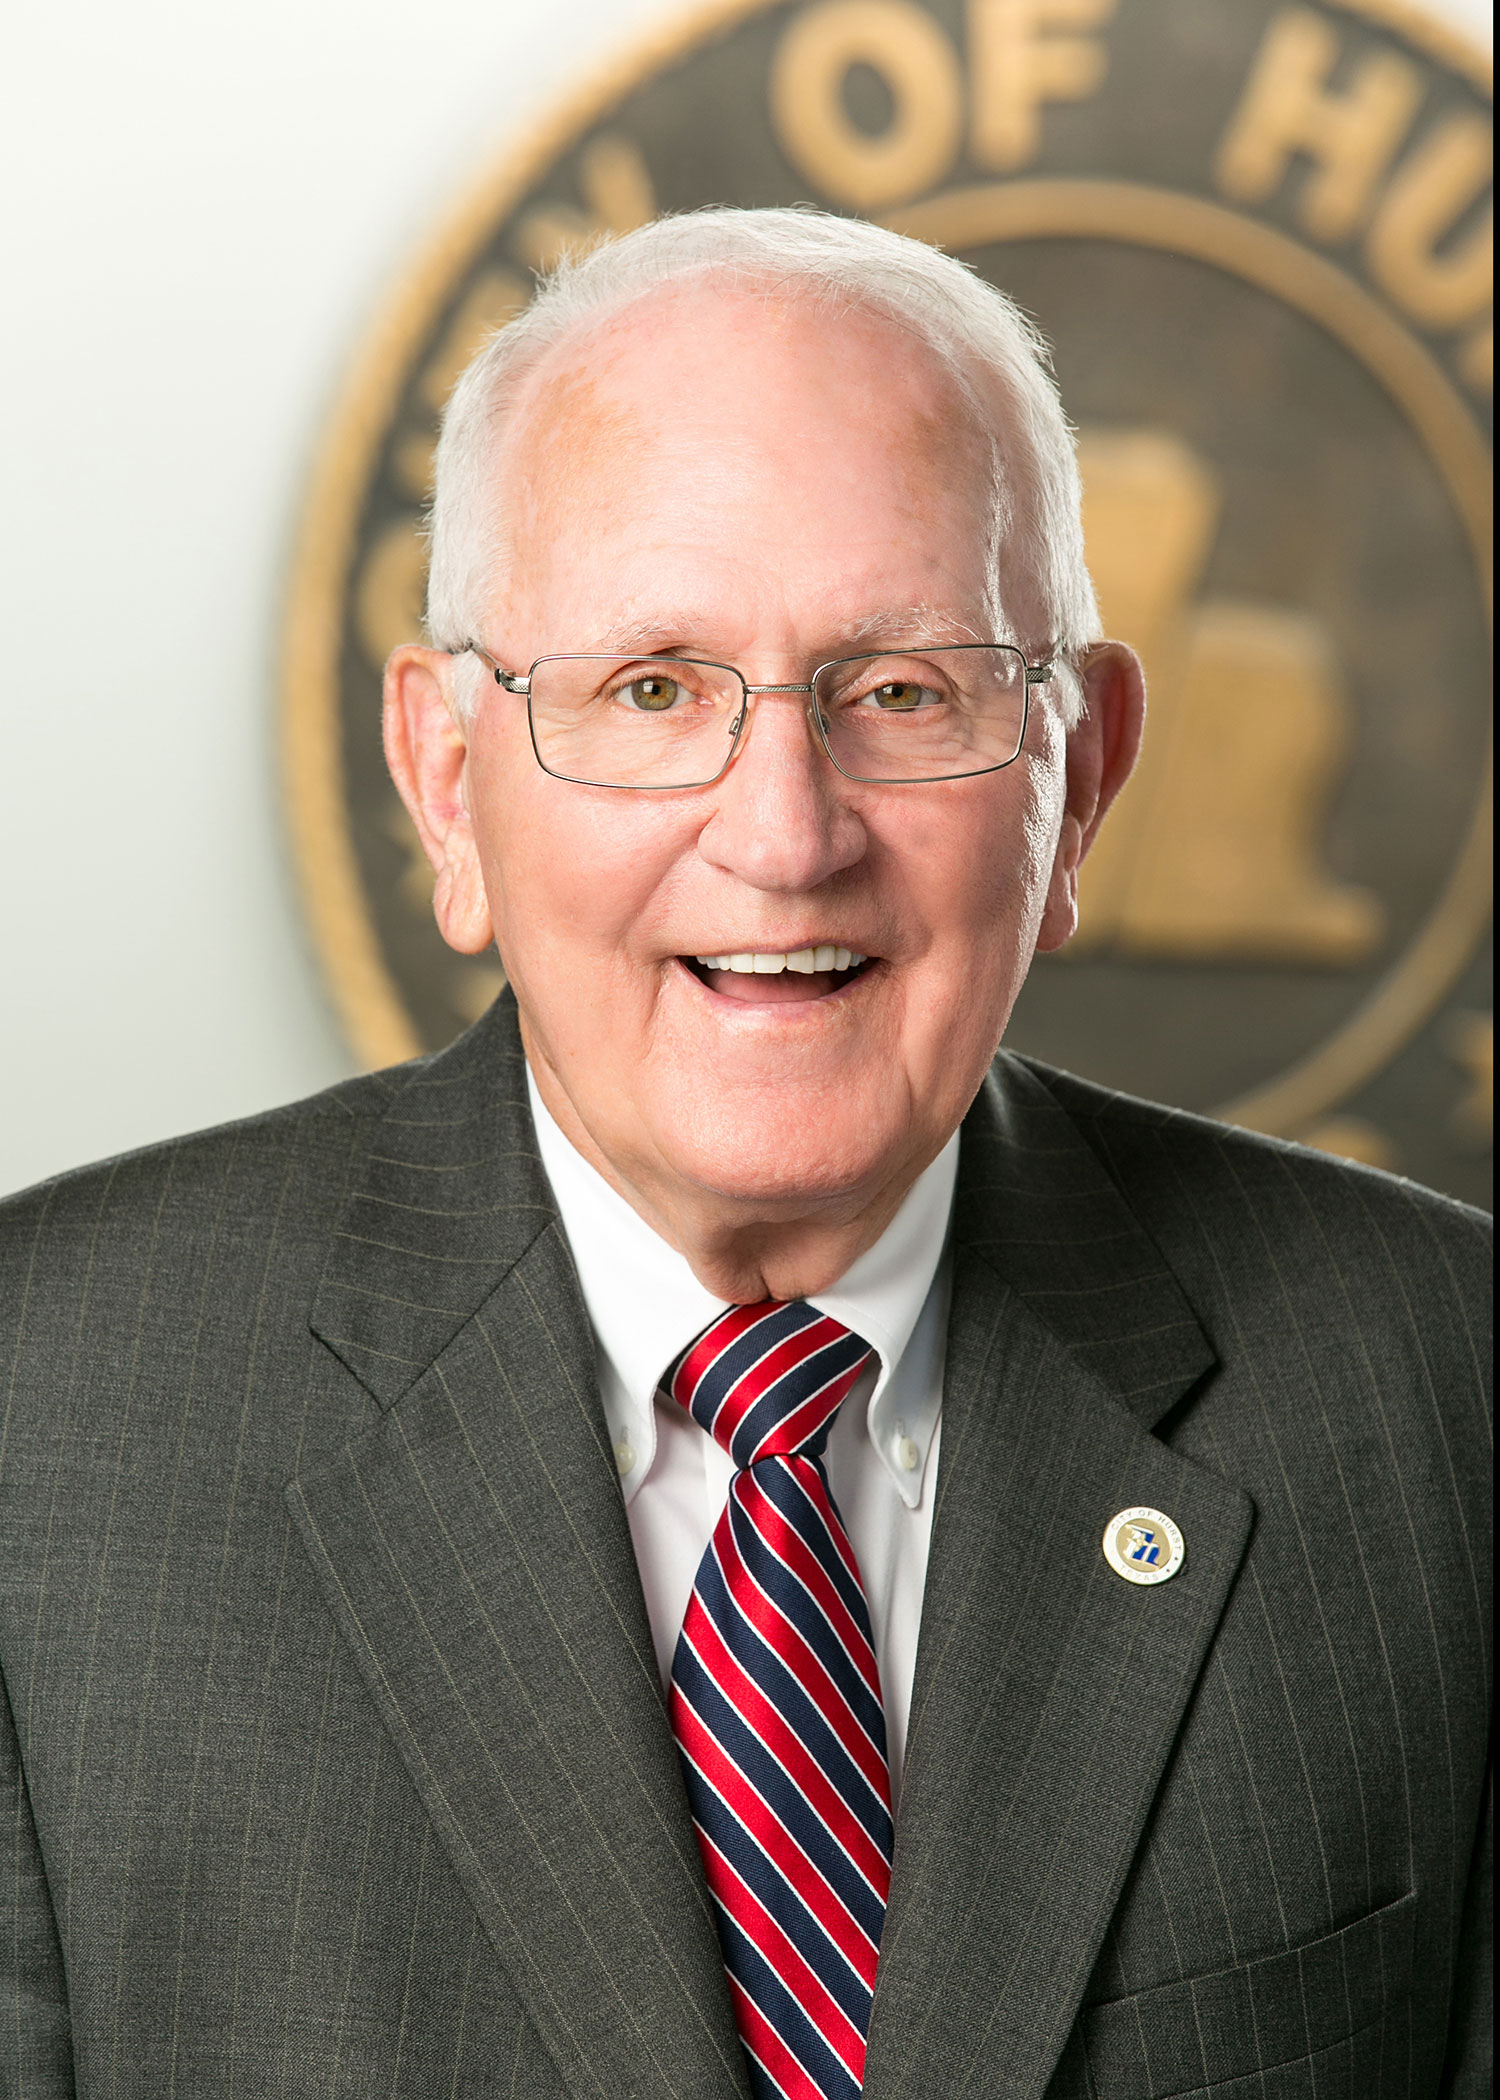 City manager government card - Richard Ward